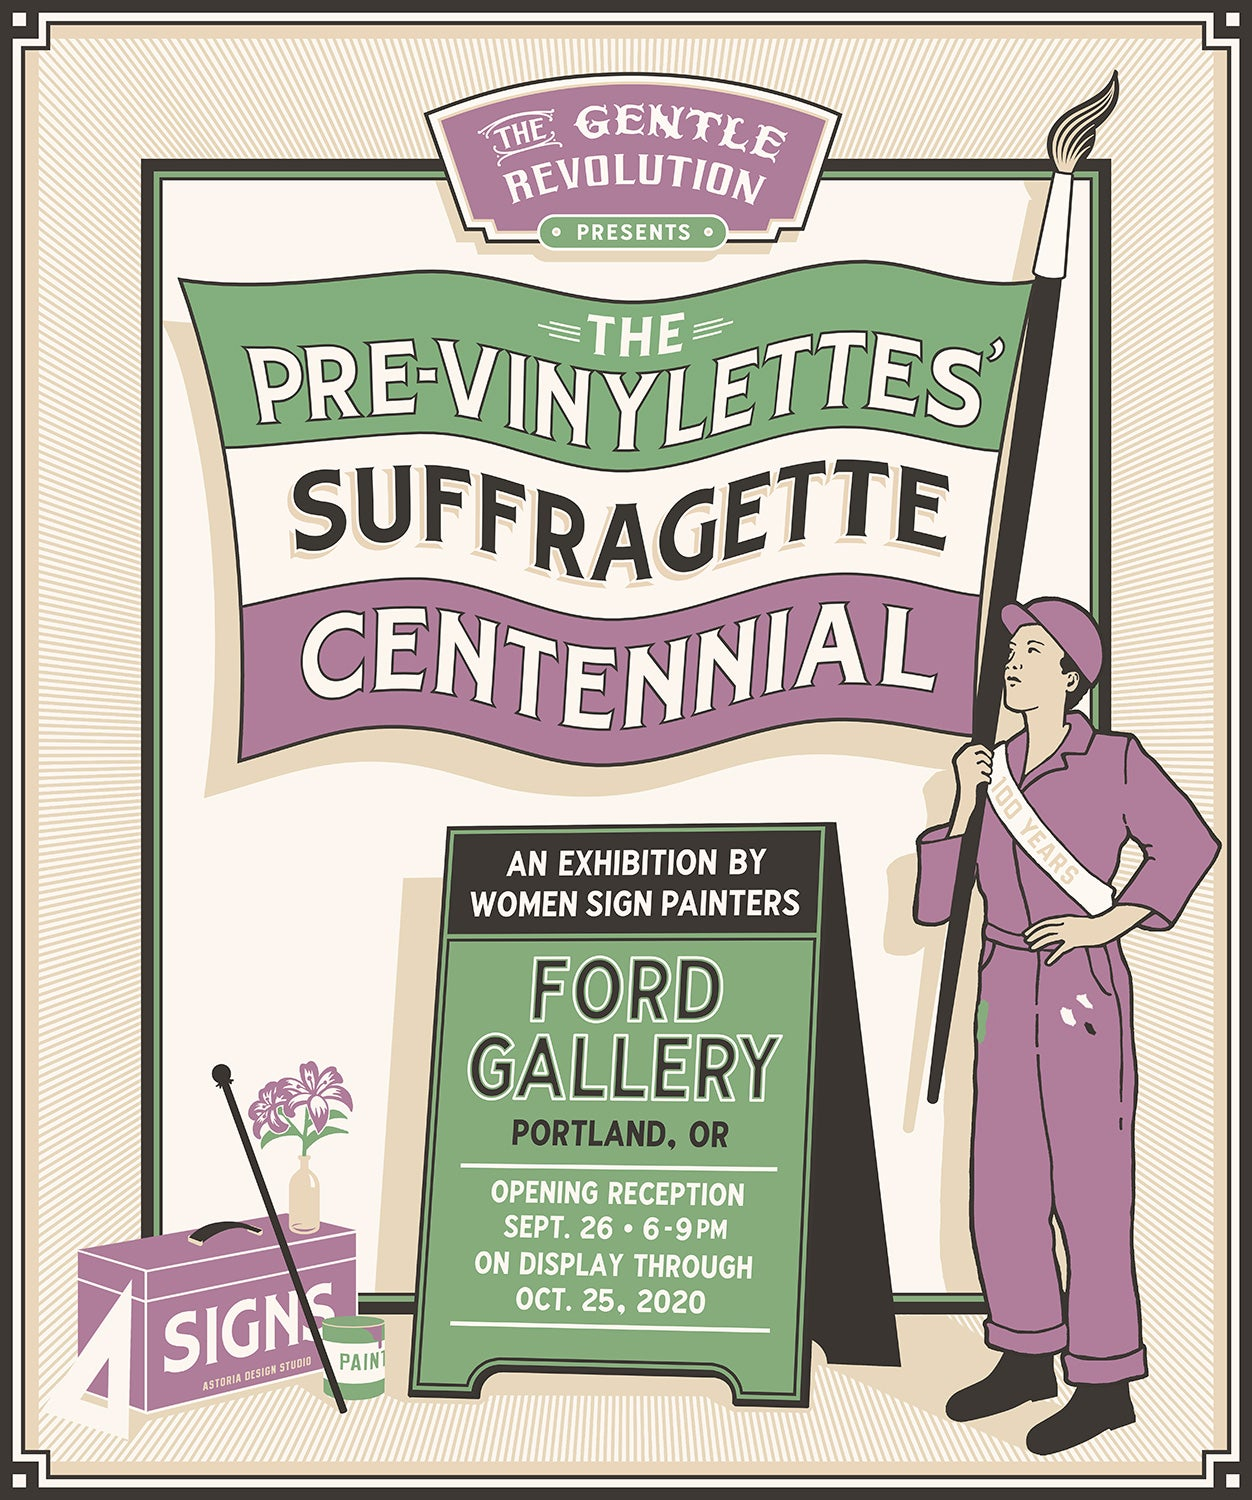 Image of The Pre-Vinylettes Suffragette Centennial Poster